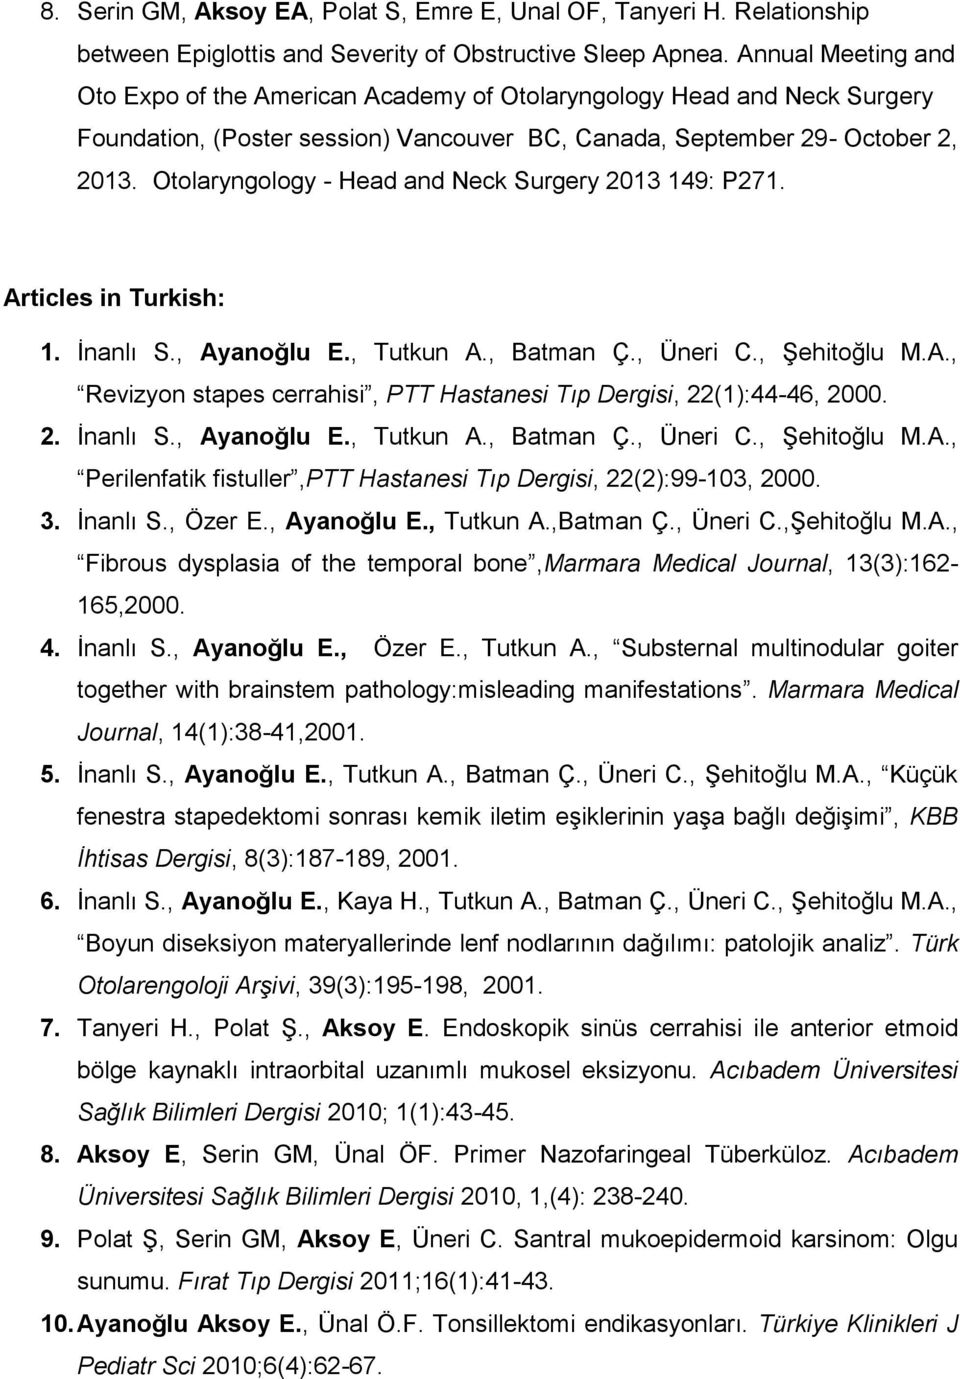 Otolaryngology - Head and Neck Surgery 2013 149: P271. Articles in Turkish: 1. İnanlı S., Ayanoğlu E., Tutkun A., Batman Ç., Üneri C., Şehitoğlu M.A., Revizyon stapes cerrahisi, PTT Hastanesi Tıp Dergisi, 22(1):44-46, 2000.